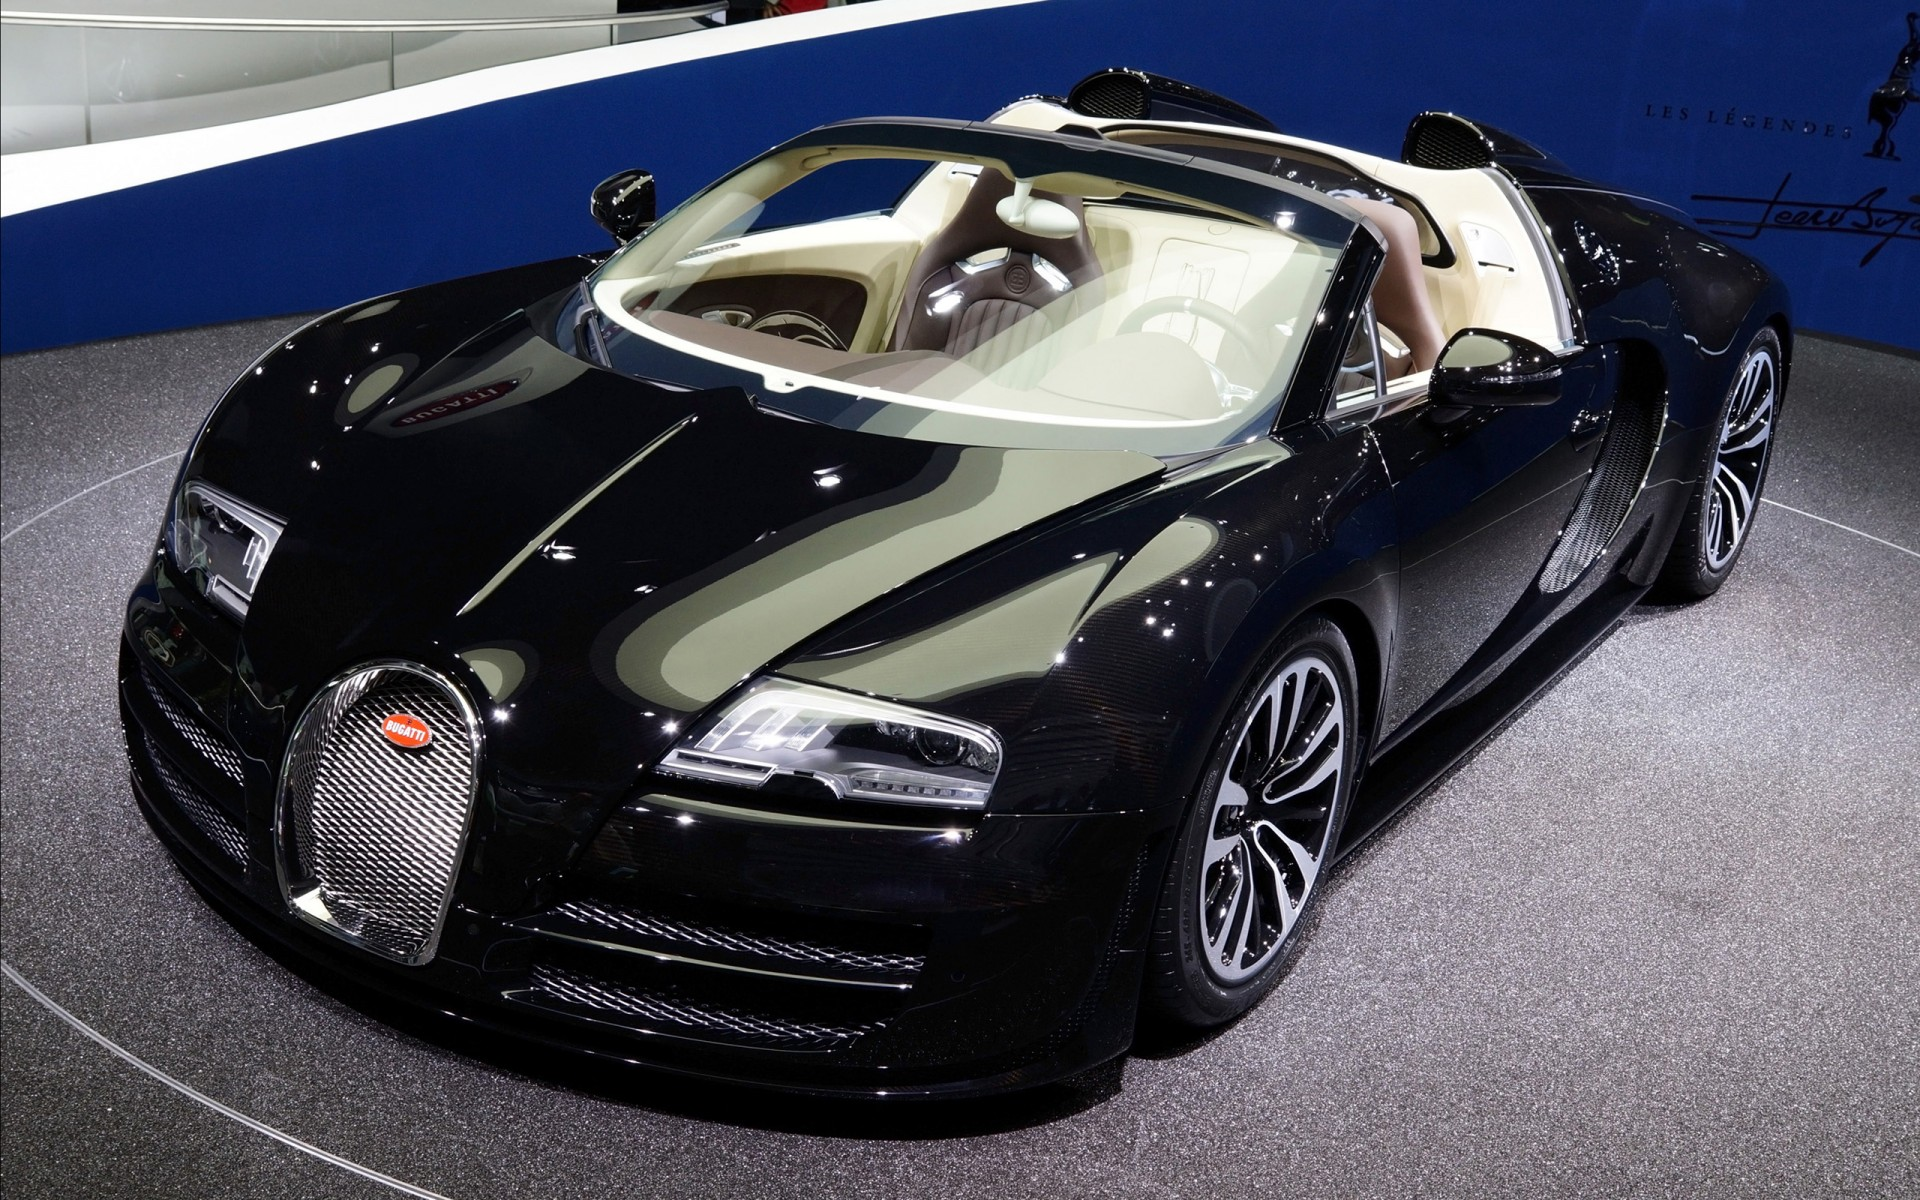 Cars Wallpapers: 2013 Bugatti Veyron IAA Frankfurt Motor Show Wallpaper